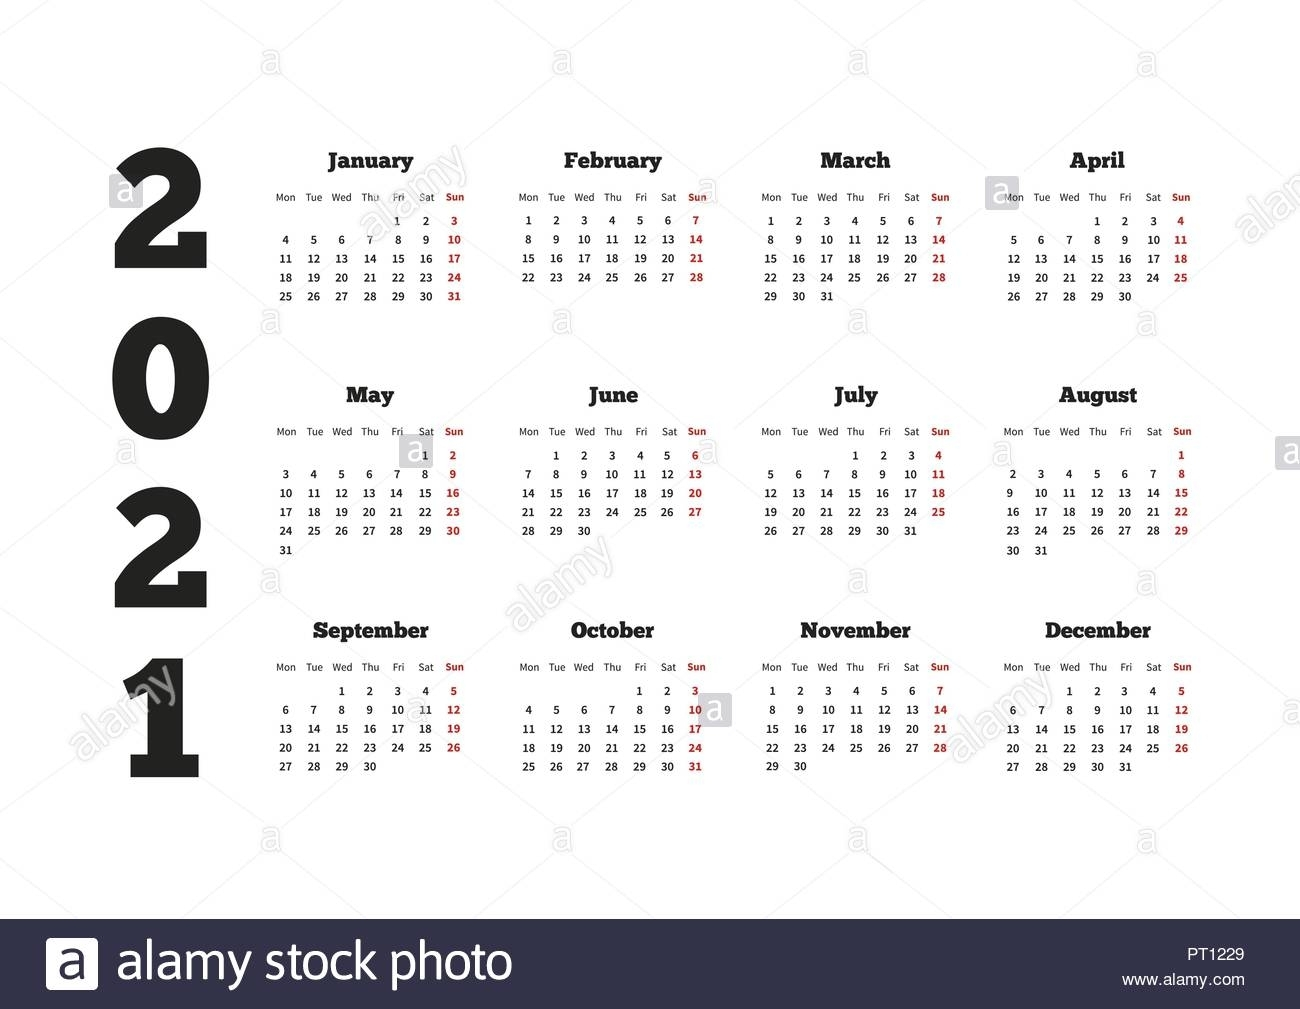 Get Yearly Calendar 2021 Monday To Sunday